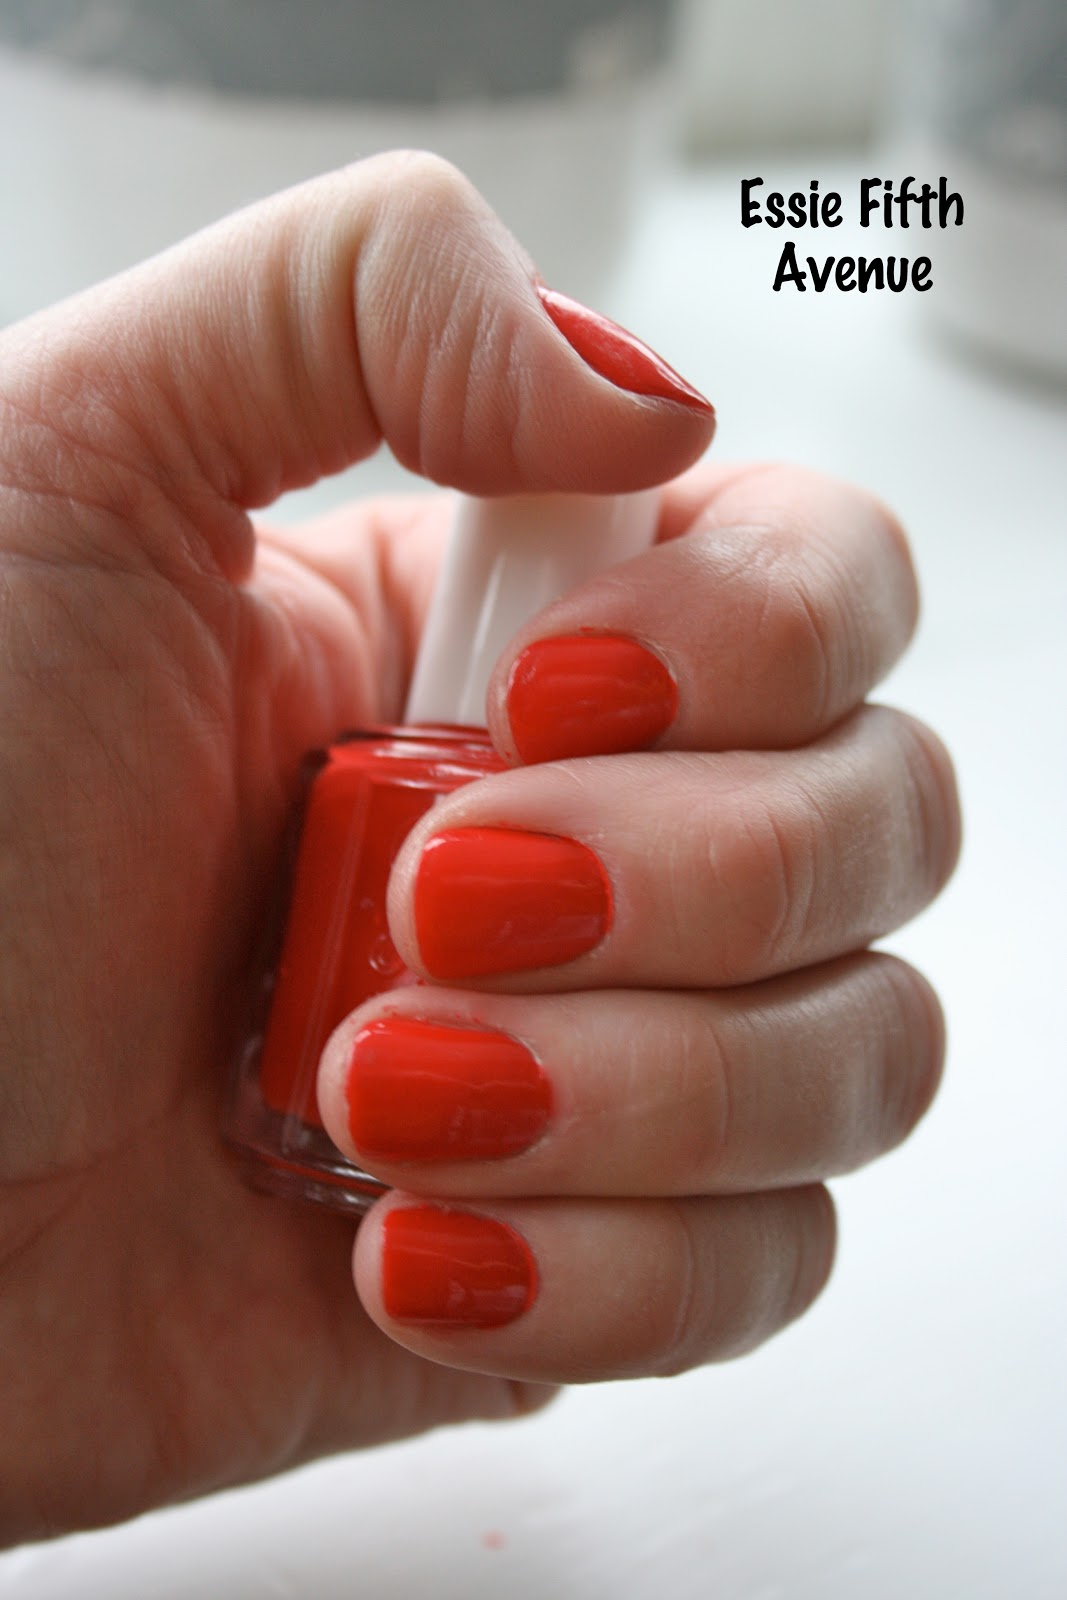 Another new day superdrugs essie polishes for 5th ave nail salon